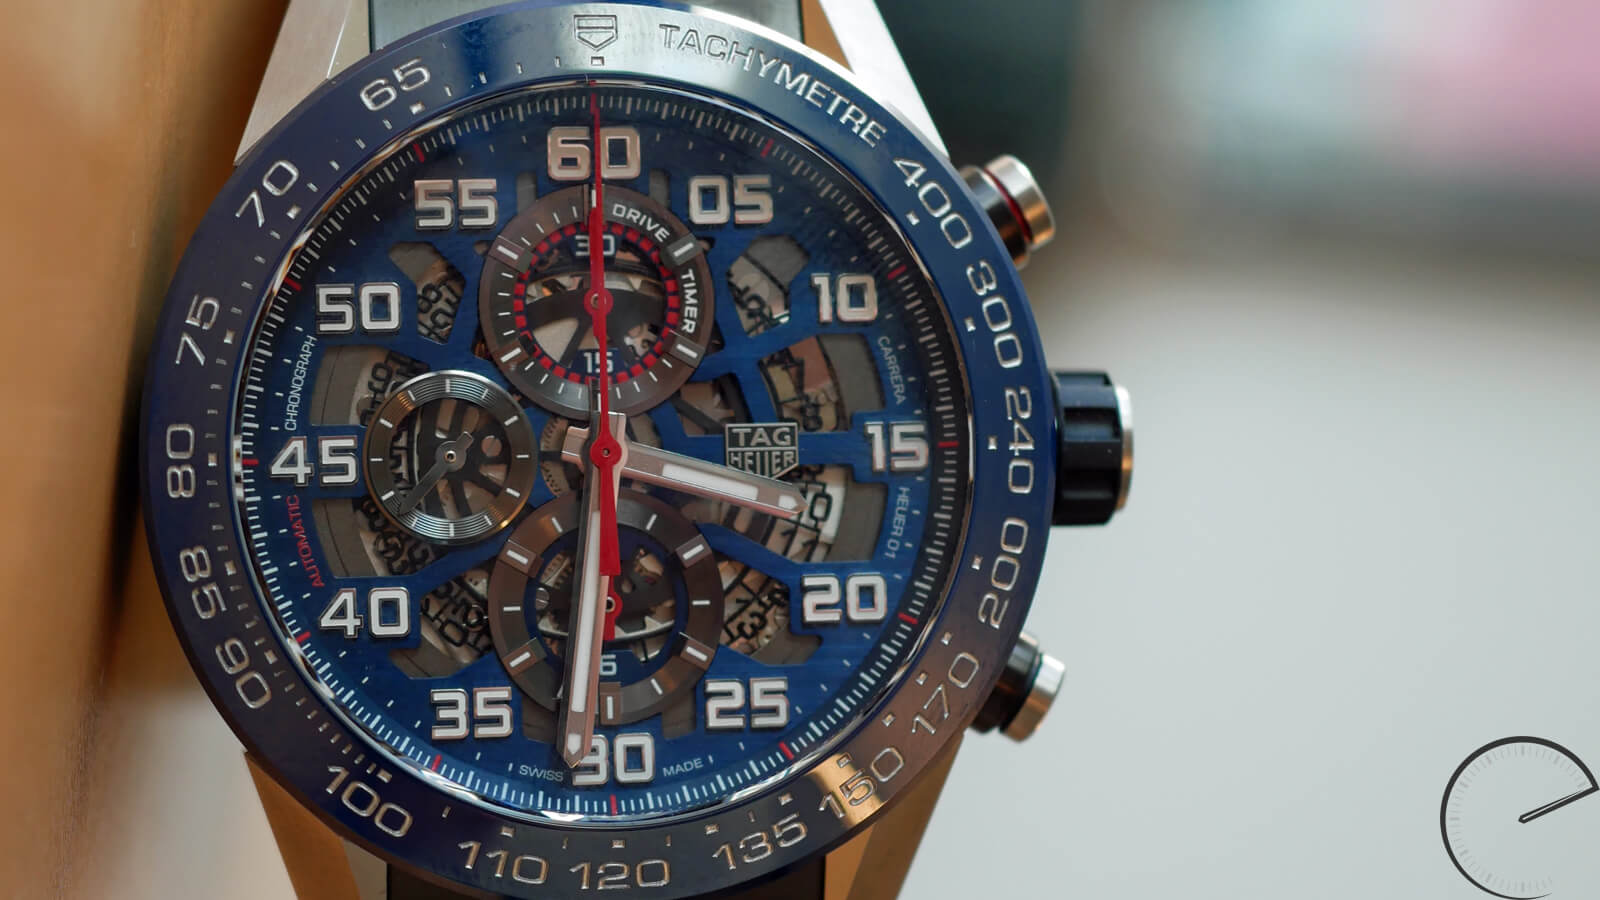 TAG Heuer Carrera Heuer 01 Red Bull Racing Special Edition - automatic Manufacture chronograph with modular construction